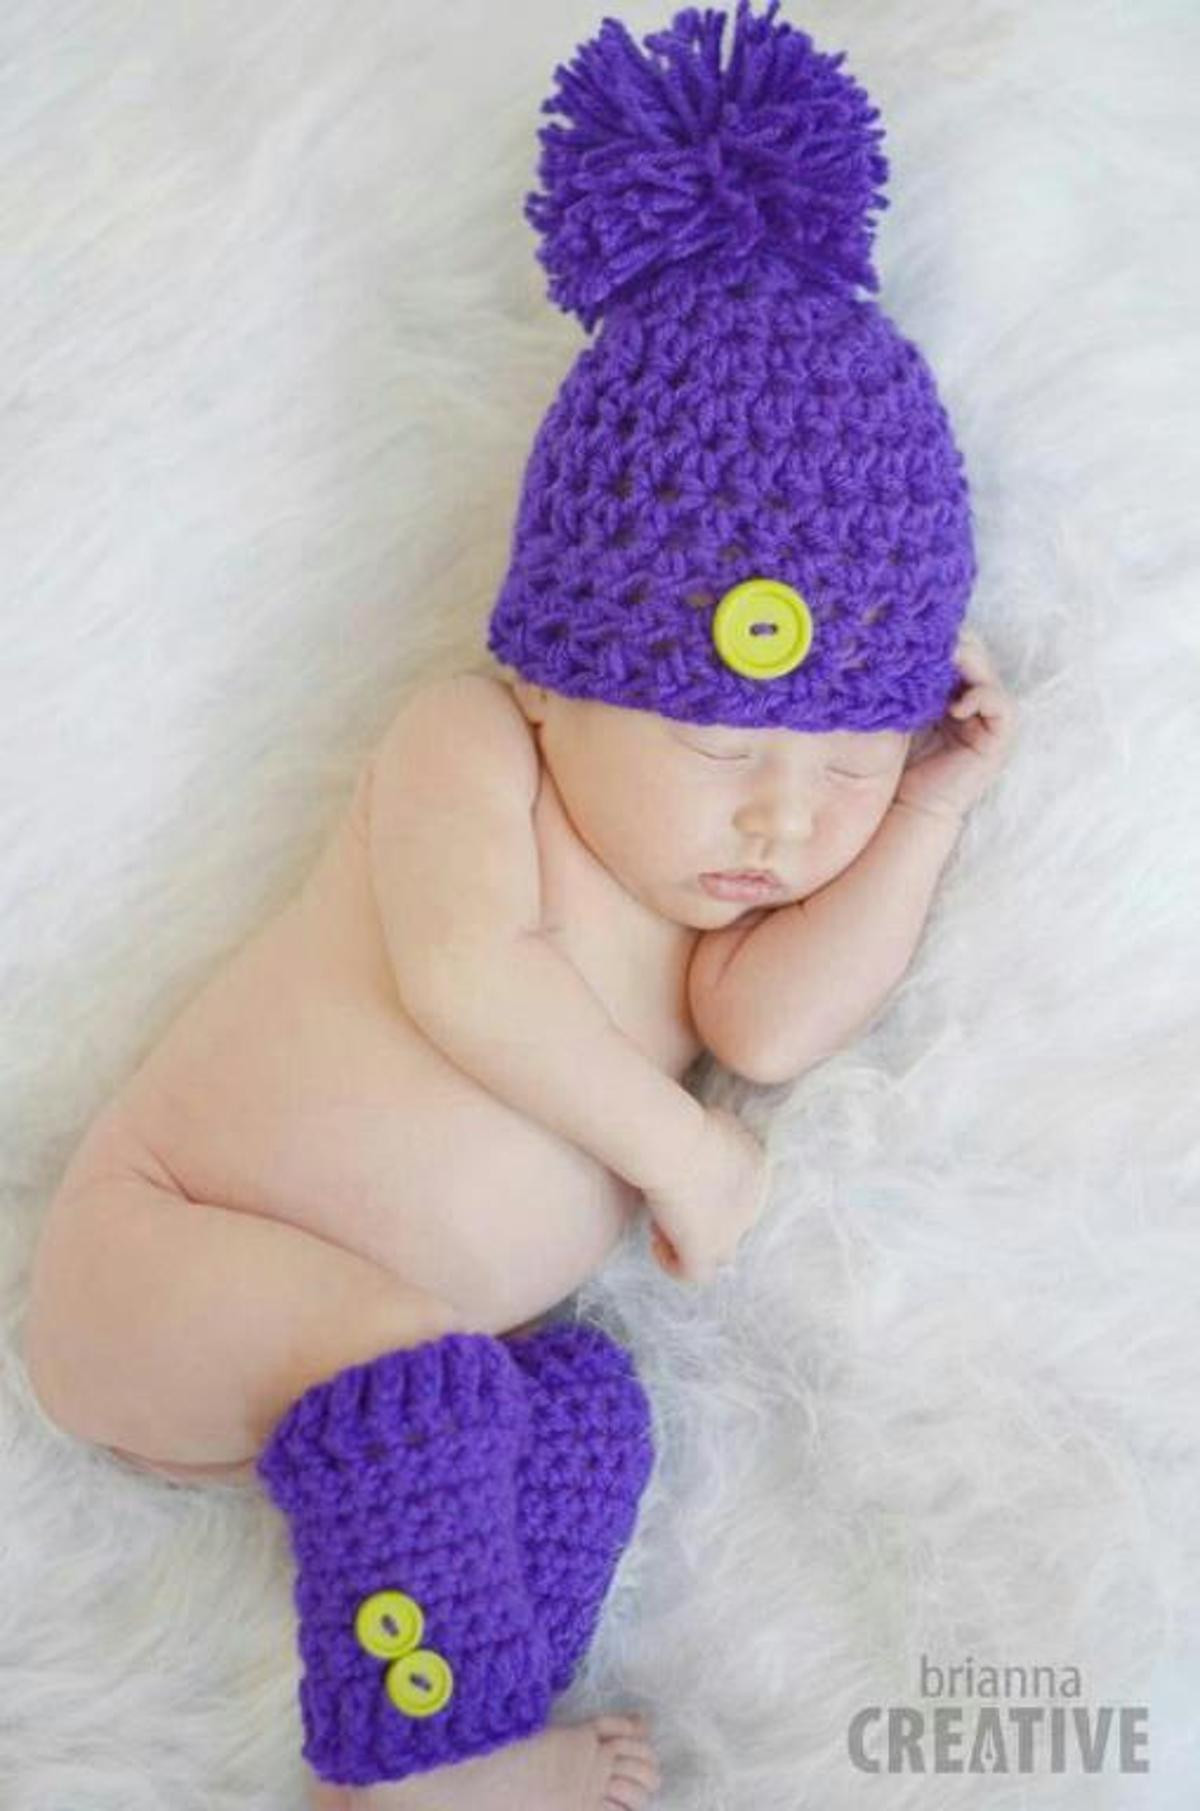 Crochet Baby Cap Beautiful 12 Newborn Crochet Hat Patterns to Download for Free Of Wonderful 43 Images Crochet Baby Cap